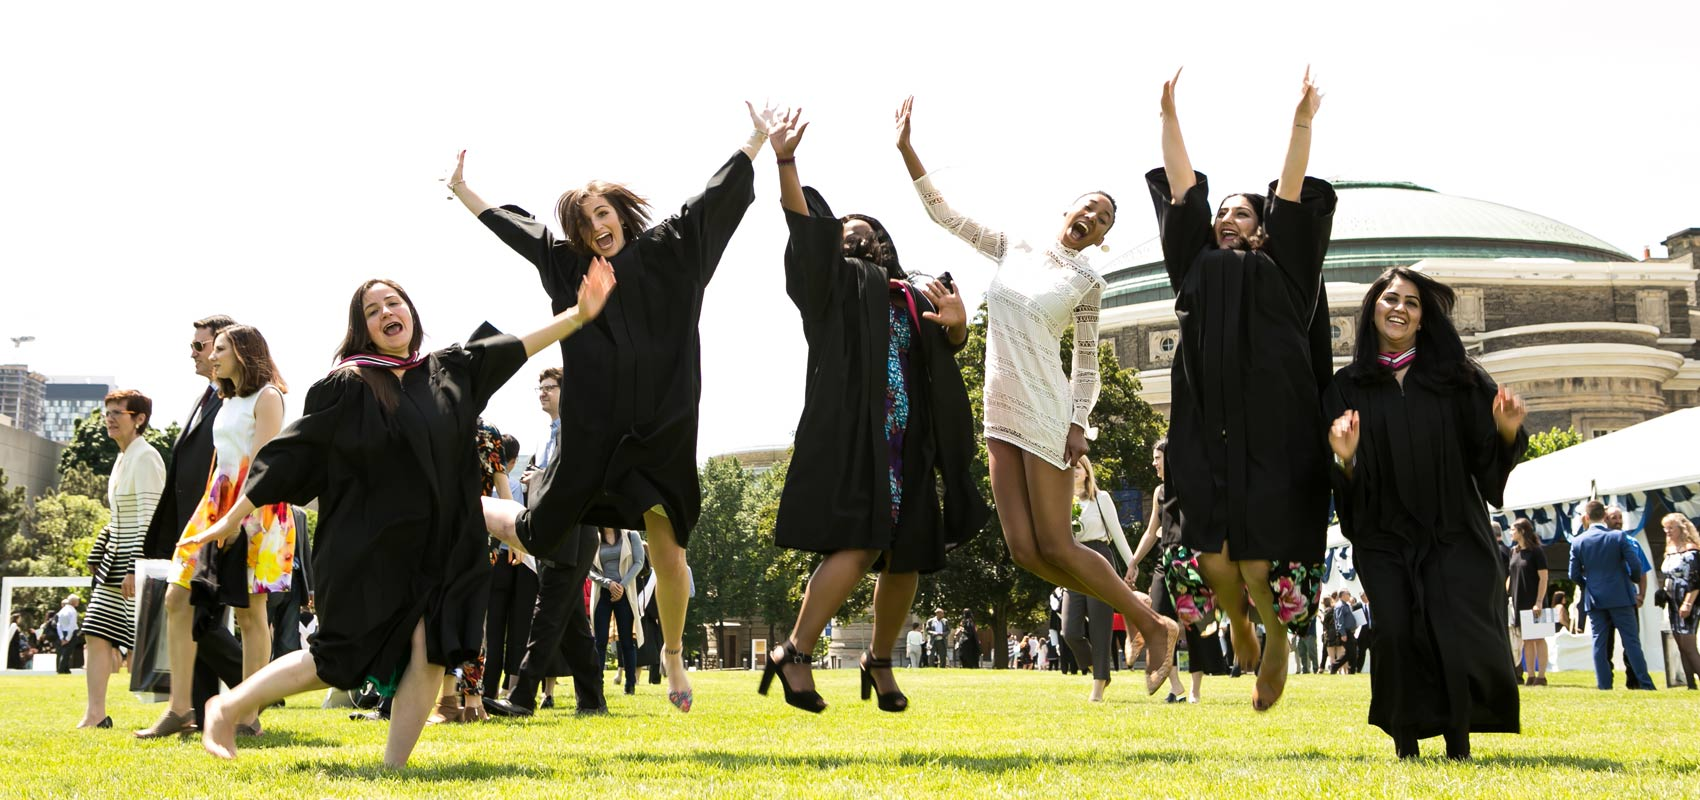 A group of students smiling and jumping in the air at their convocation ceremony on front campus, St. George. Photo credit: Dhoui Chang